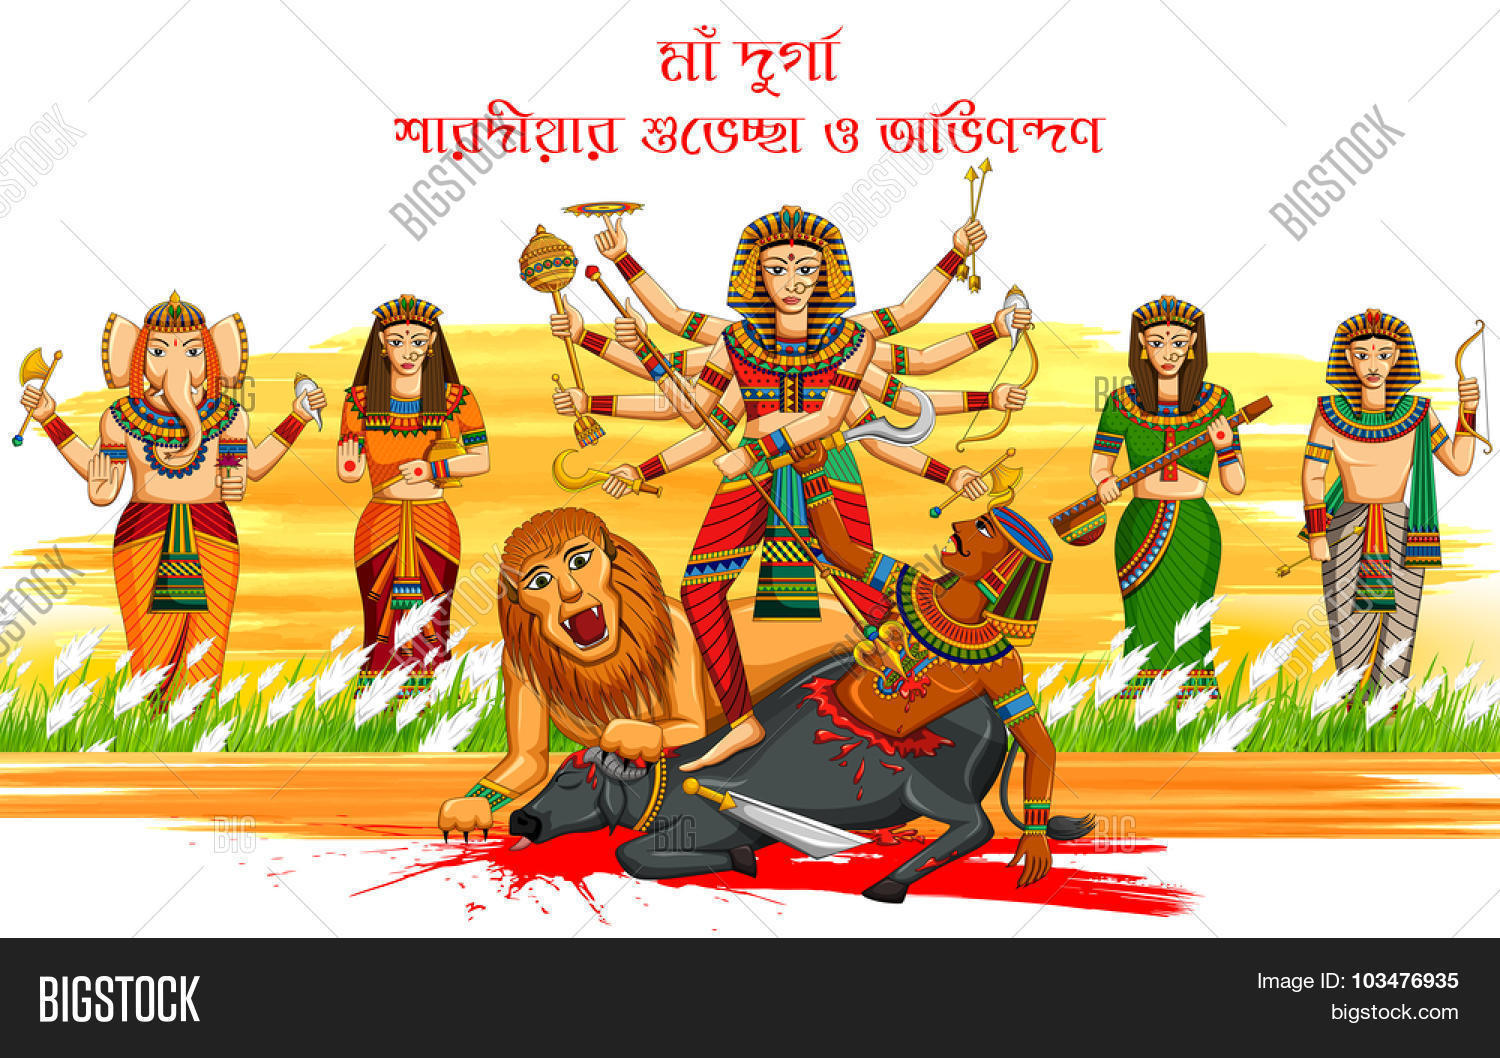 Illustration happy durga puja vector photo bigstock illustration of happy durga puja background with bengali text meaning mother durga autumn greetings kristyandbryce Images